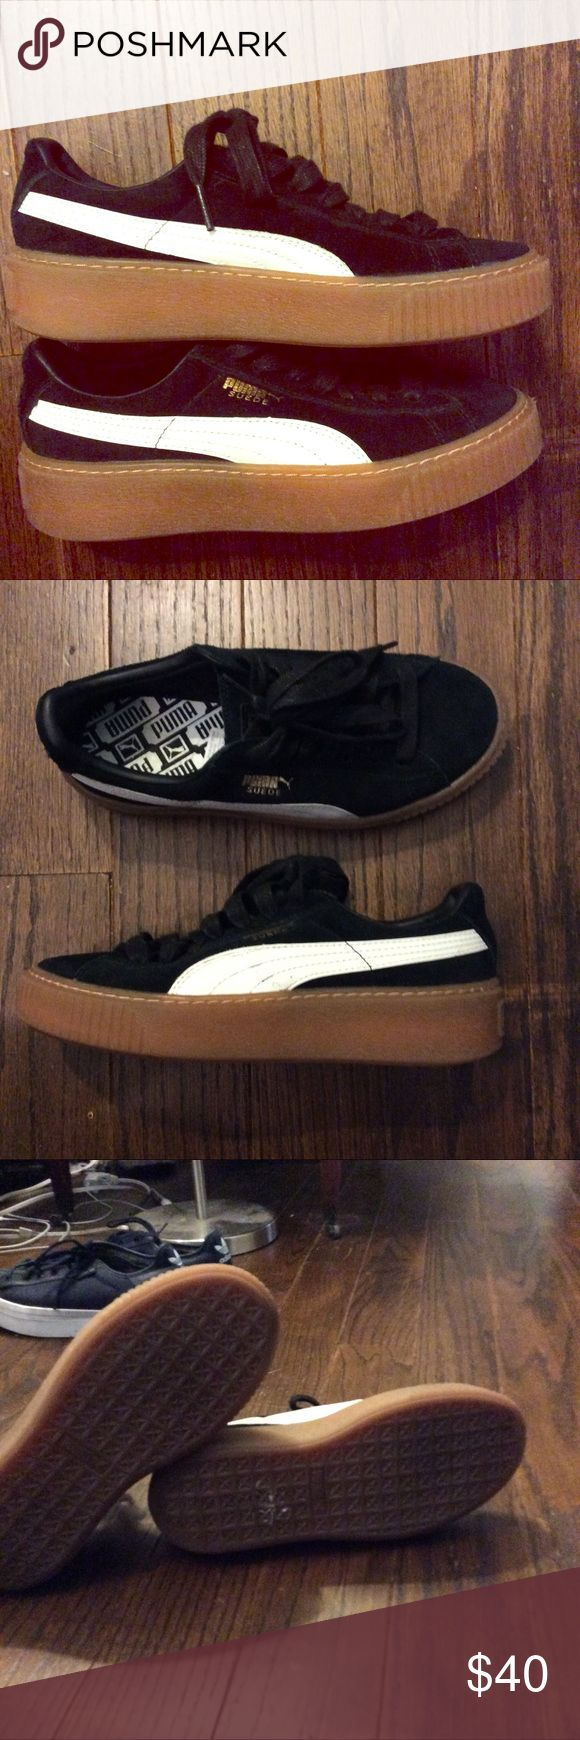 puma platform creeper sneaker Like new. Small spot on bottom is from where sale sticker was Puma Shoes Sneakers